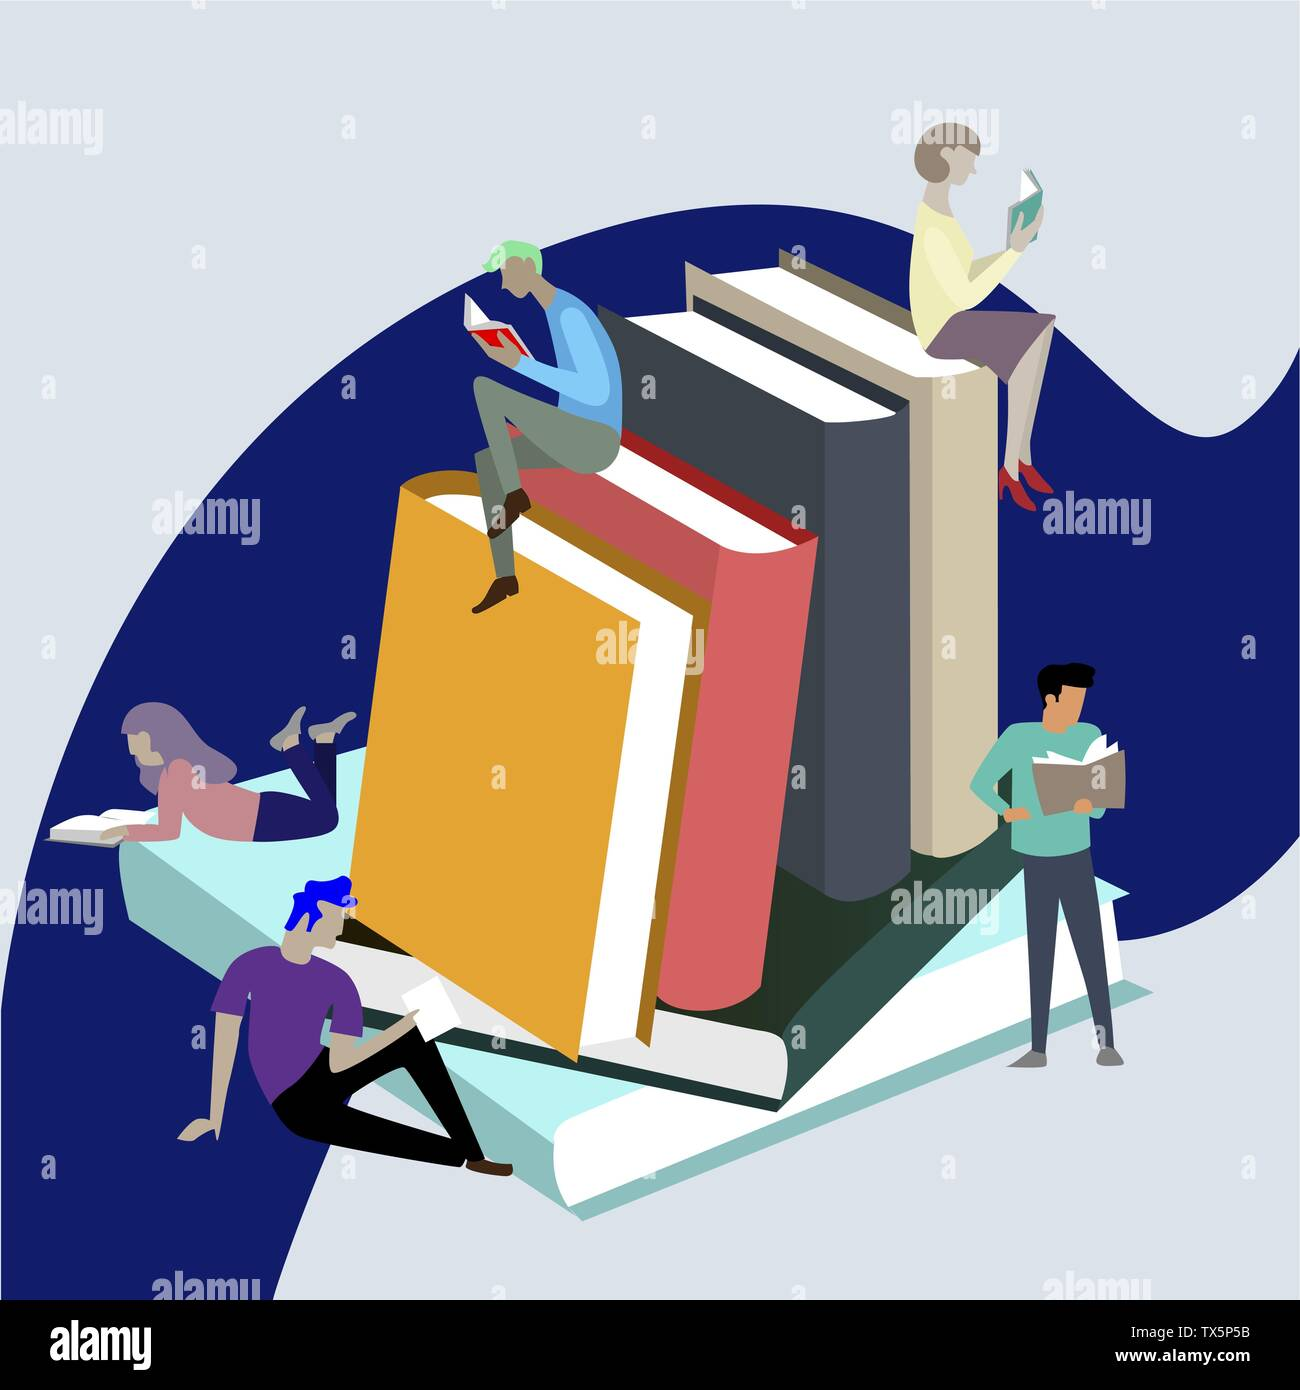 People read books, sitting on stack. Textbook studying, reader bibliophile, bookworm on pile of book illustration - Stock Image